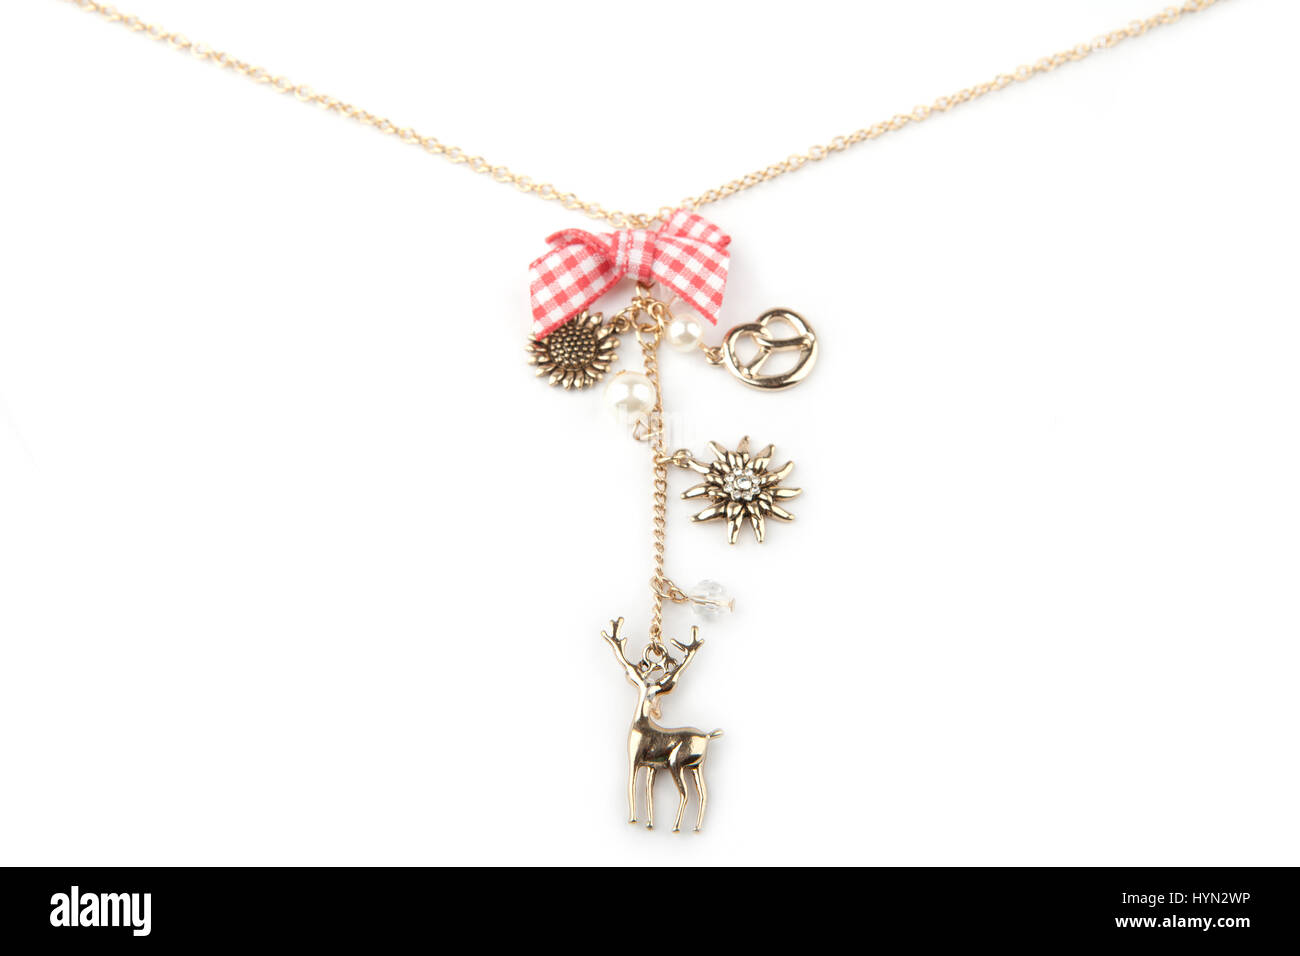 Lucky charm necklace, isolated on white Stock Photo